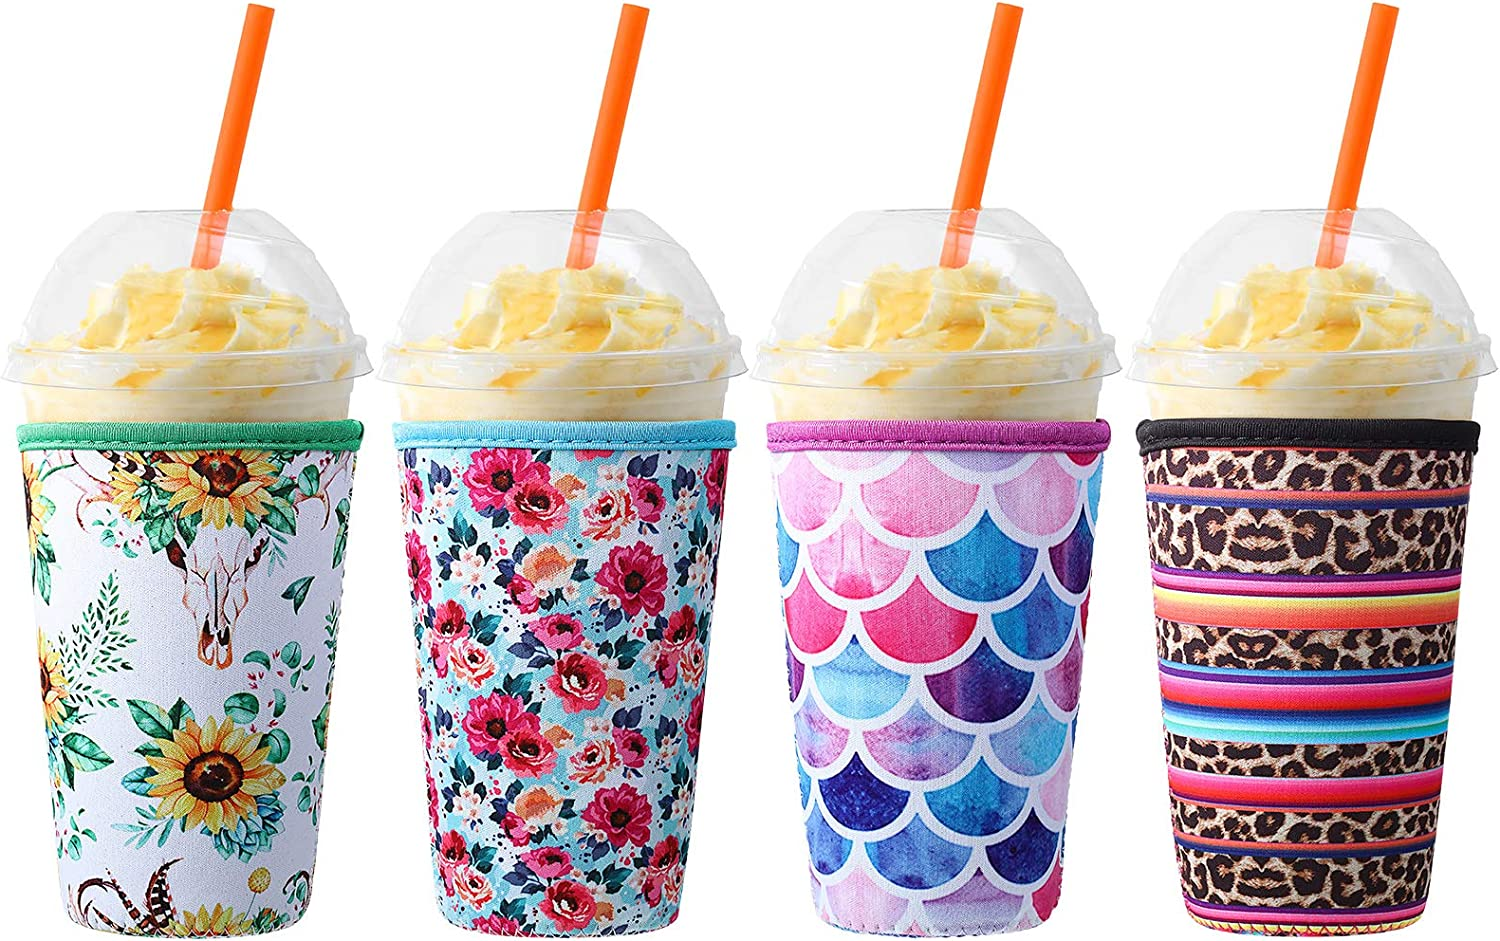 4 Pieces Reusable Iced Coffee Sleeve Neoprene Cup Holders Drinks Insulator Sleeve for 32 oz Cold and Hot Beverages, 4 Styles